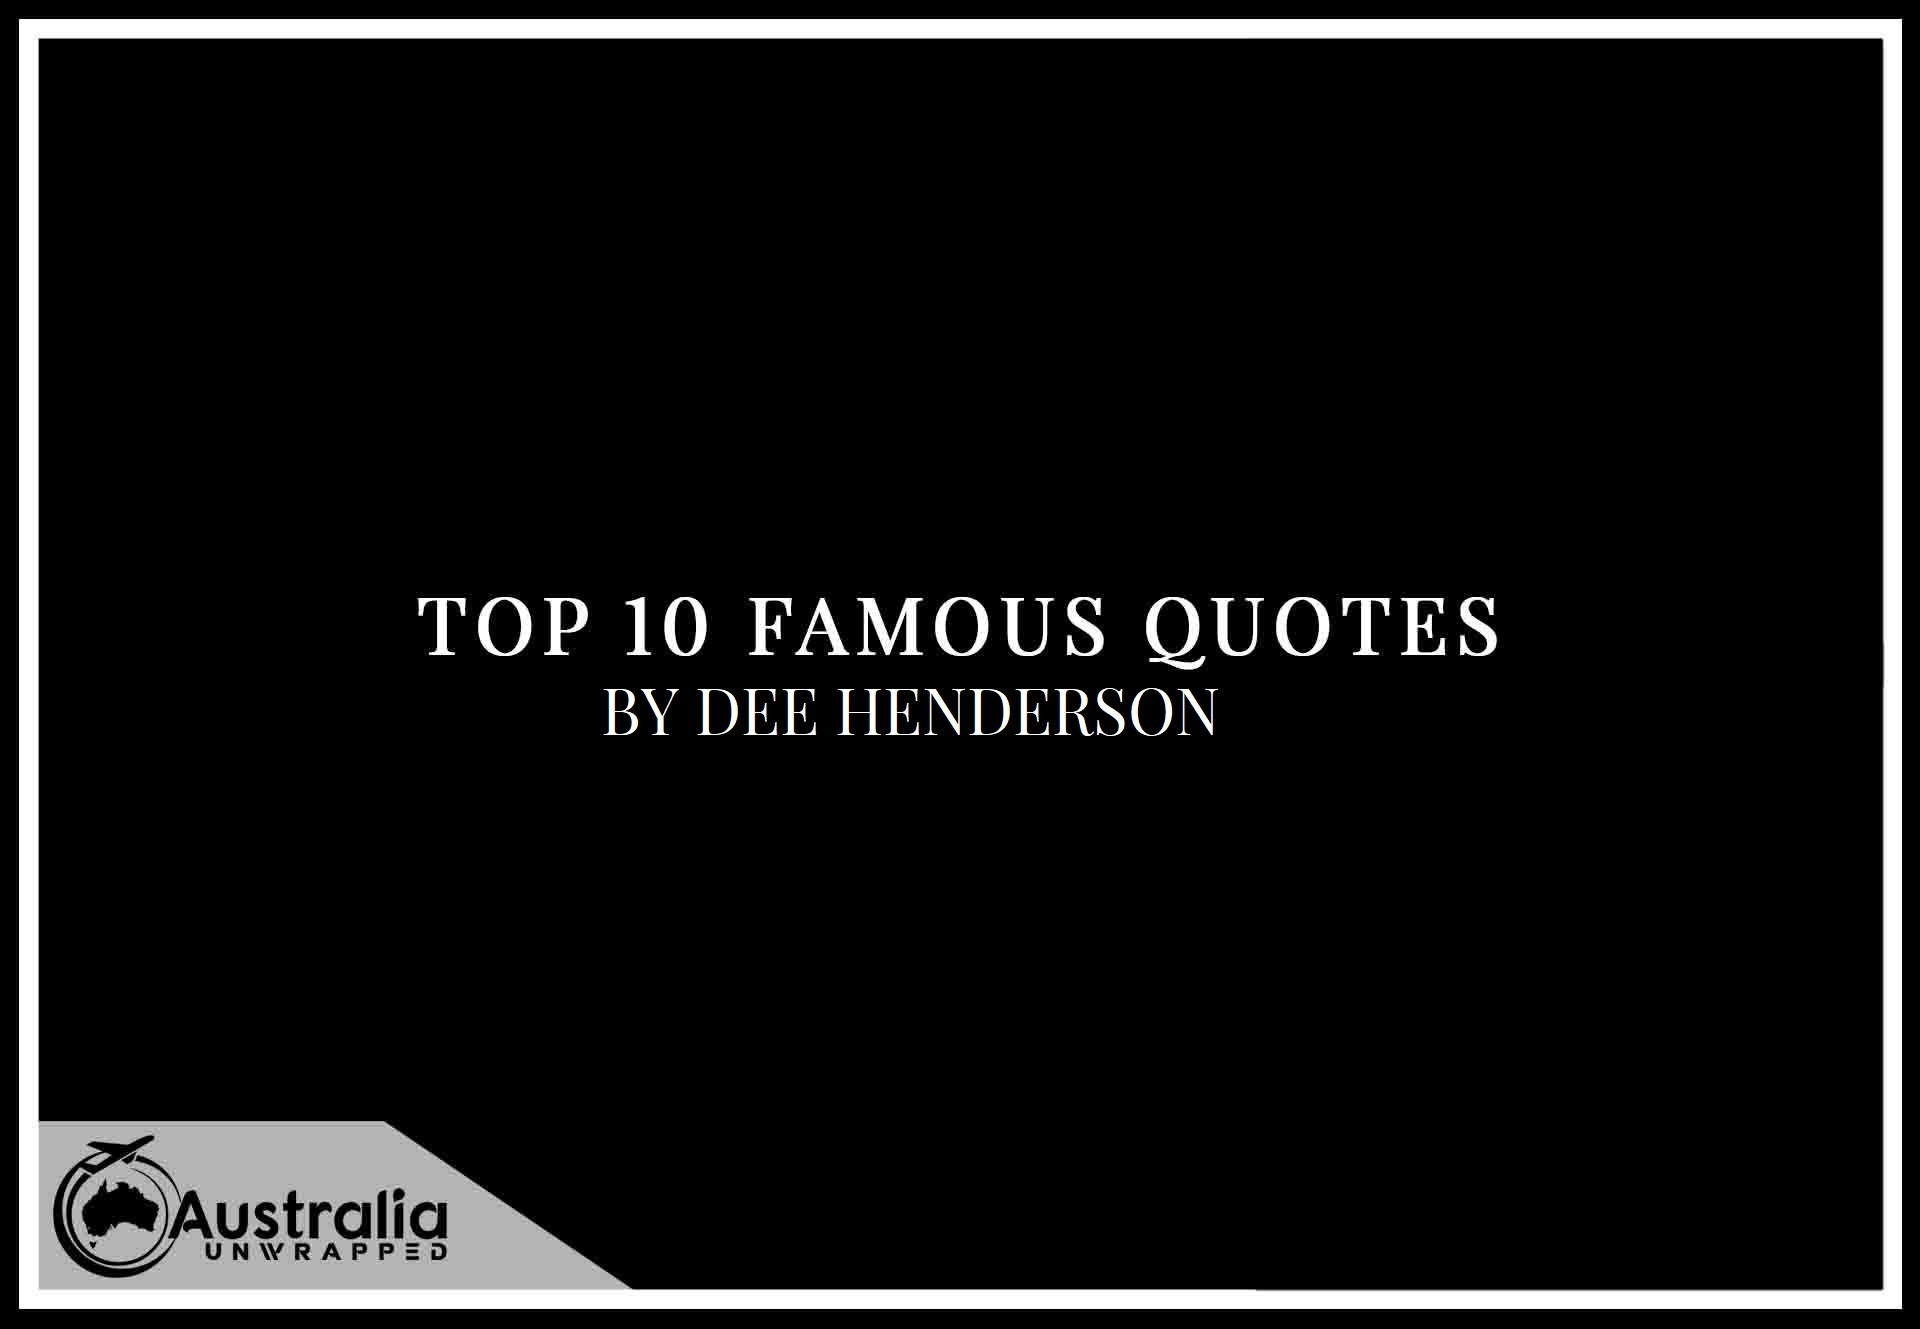 Top 10 Famous Quotes by Author Dee Henderson